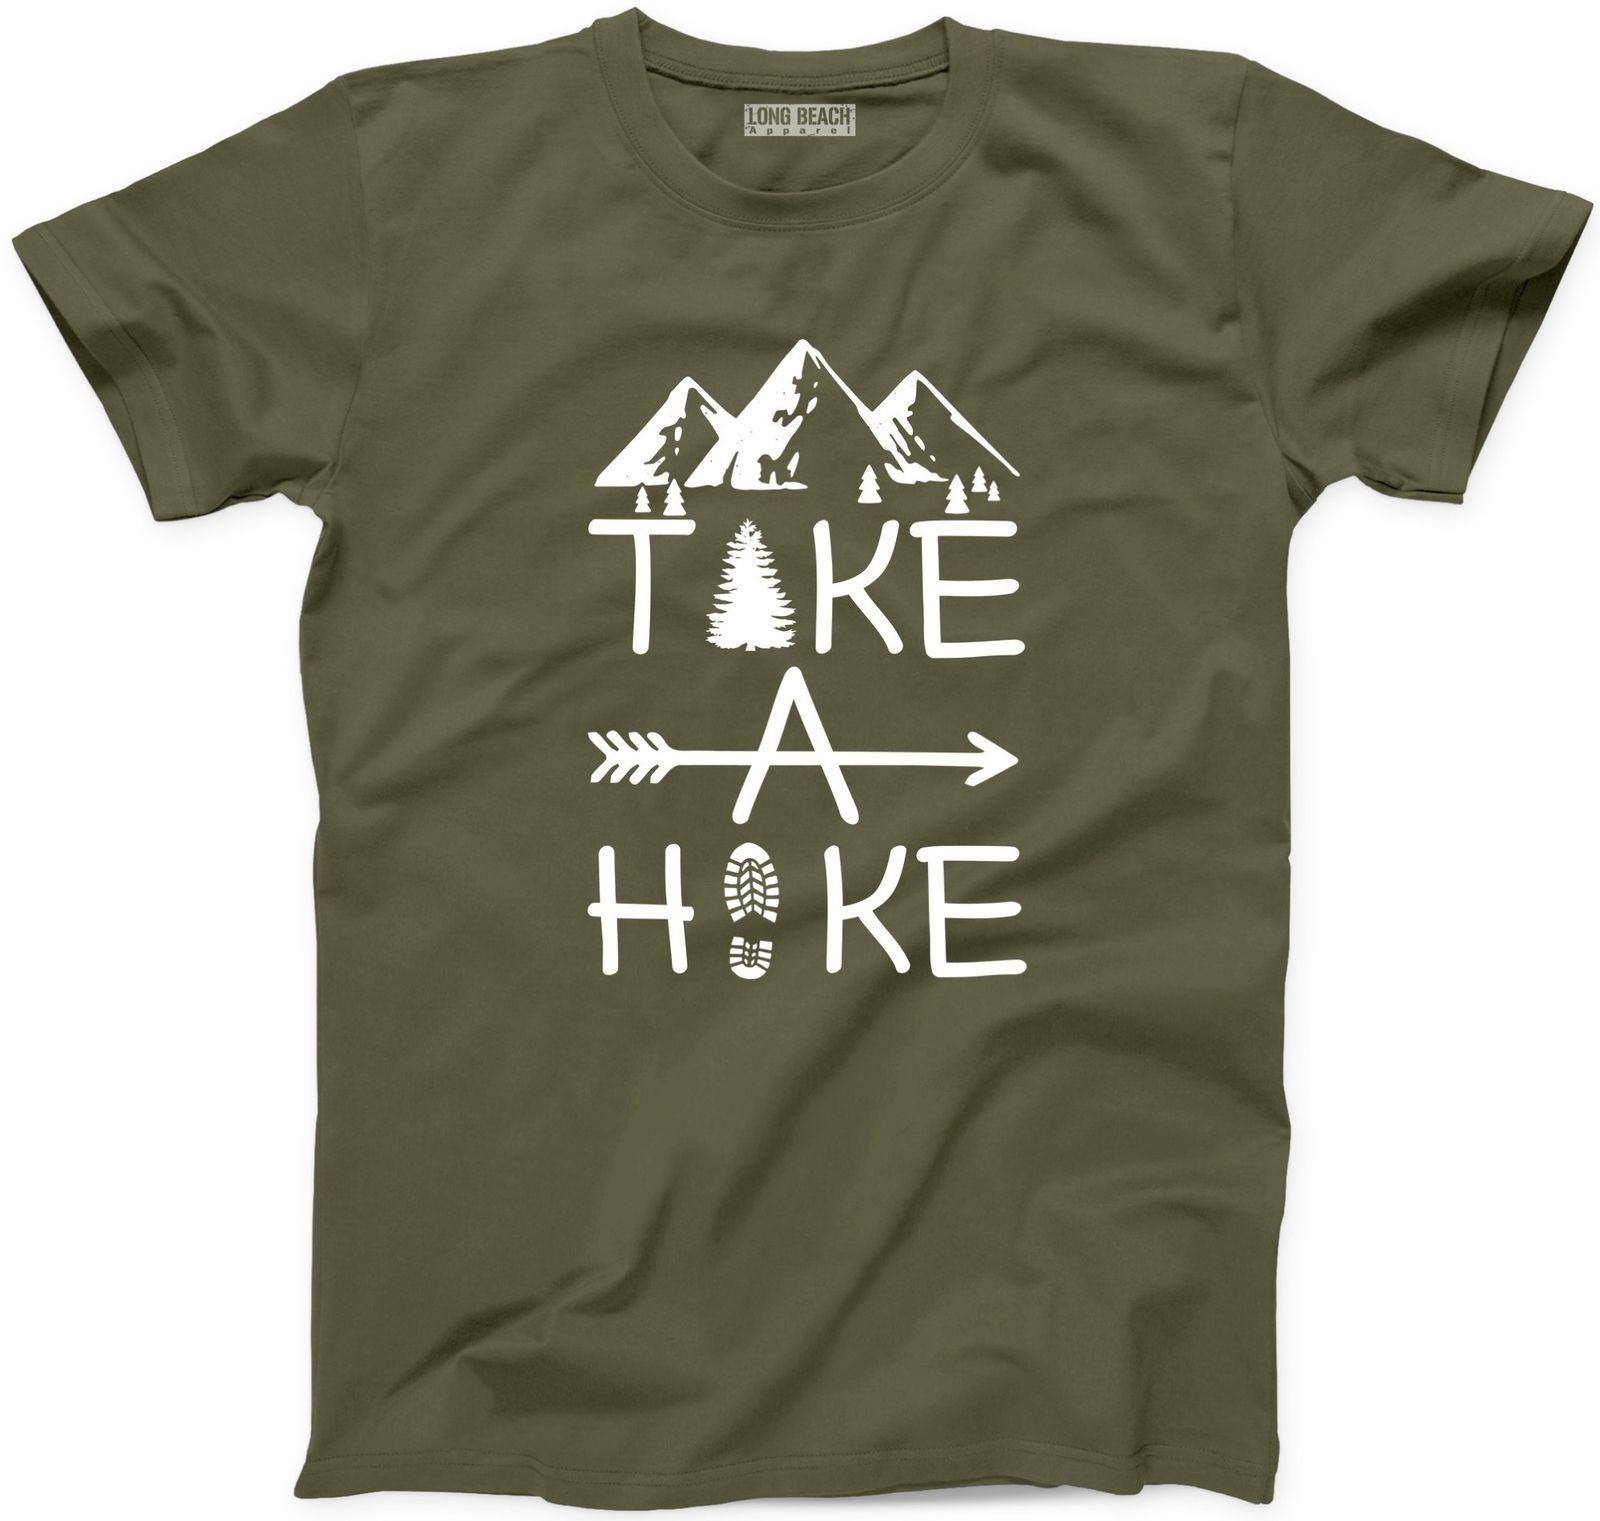 41c9128c359 Take A Hike T Shirt Funny Hiker Happy Camper New Adventure Mountain Graphic  Tee Funny Unisex Casual Tshirt Band T Shirts T Shirt Designs From  Blue water